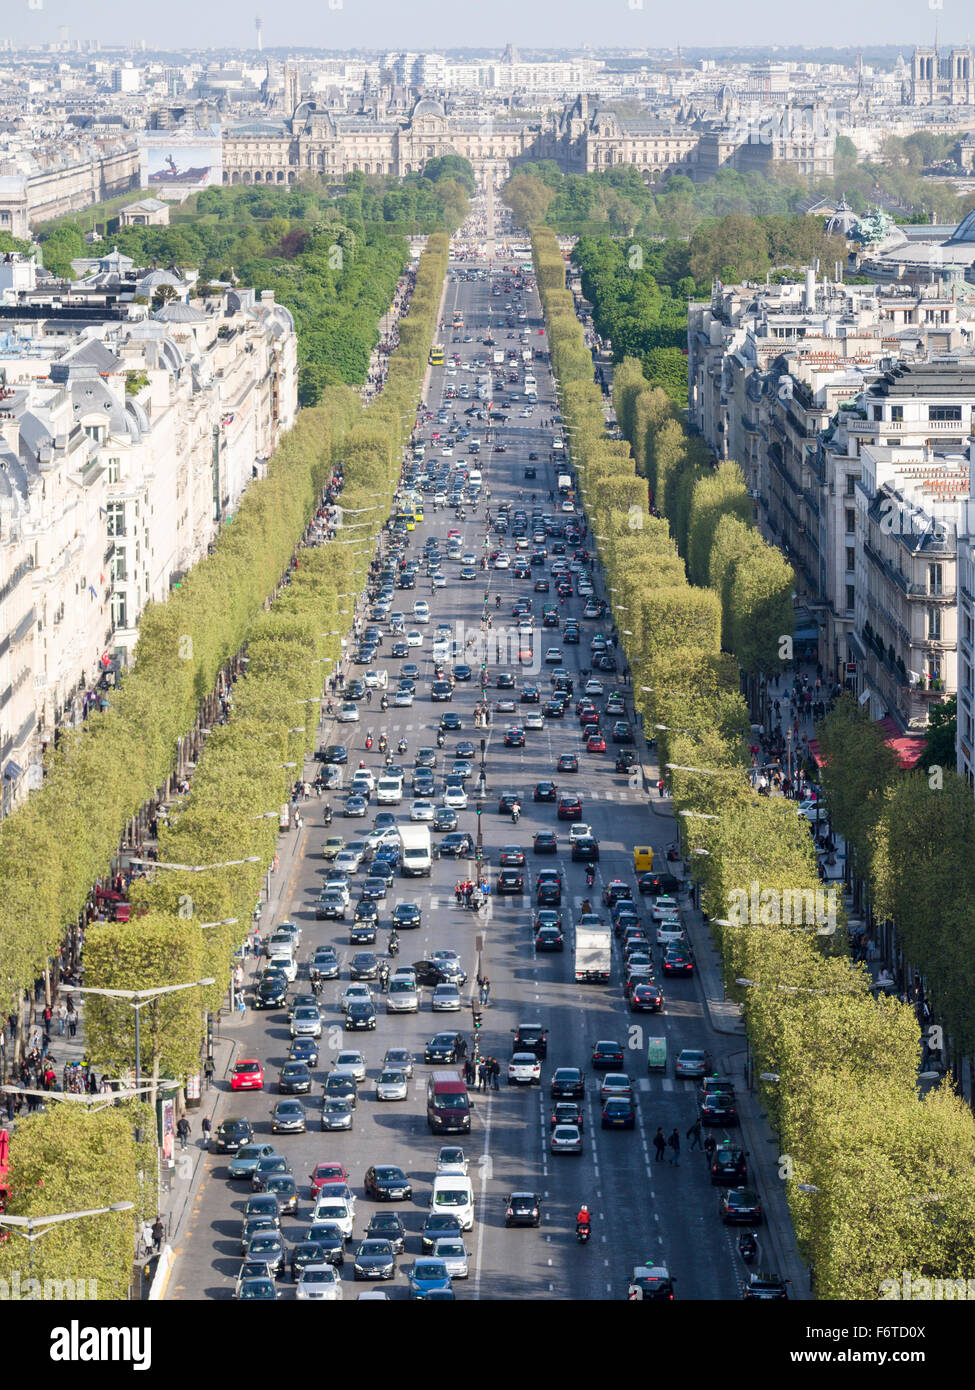 Avenue des Champs-Elysees. The Champs-Elysses from the Arc de Triomphe looking towards the Louvre Palace. - Stock Image